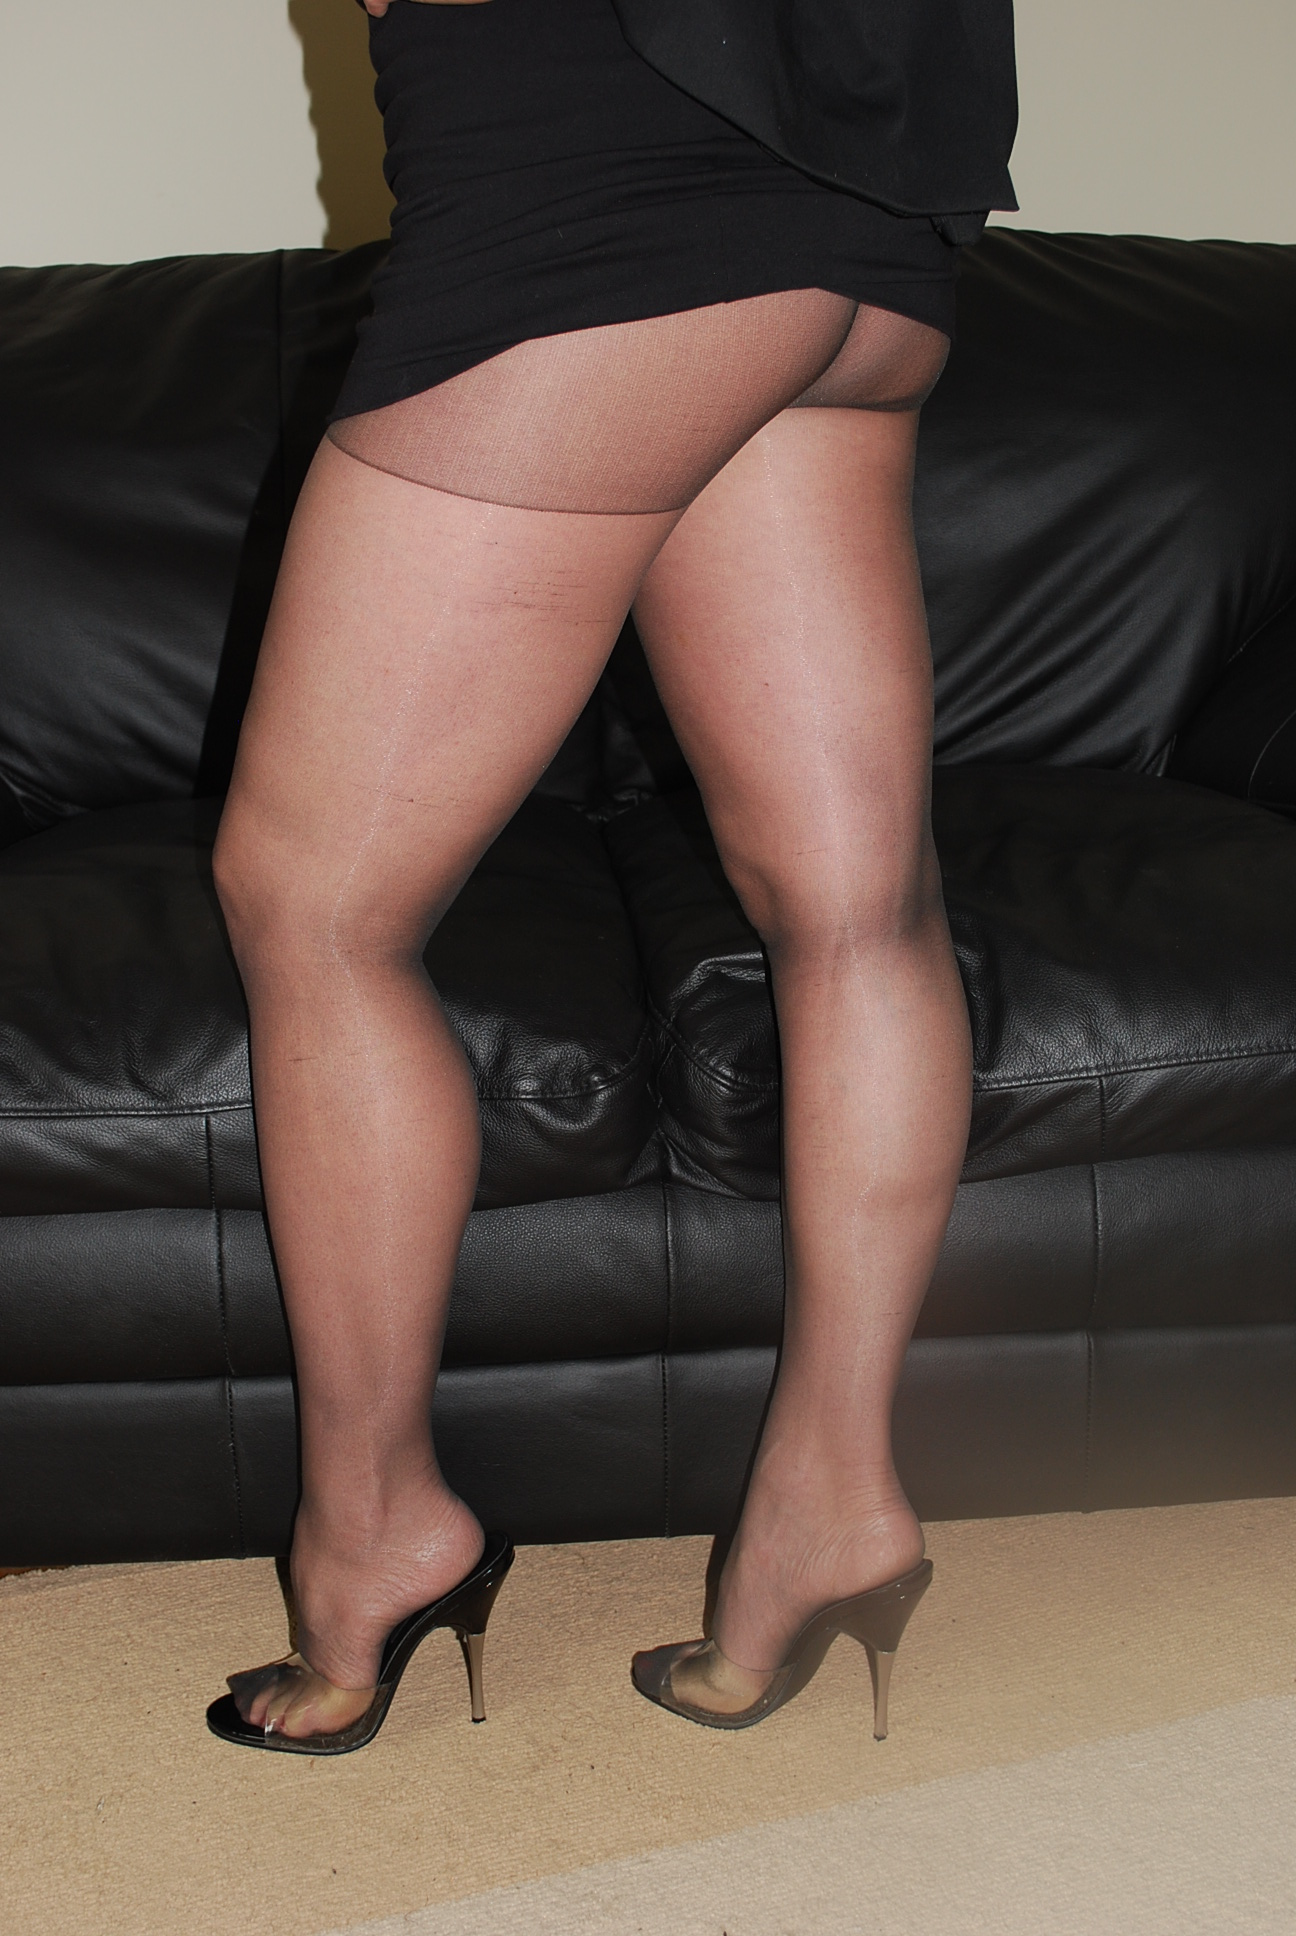 clad in sheer silky ff stockings and high heels   stockings girdles